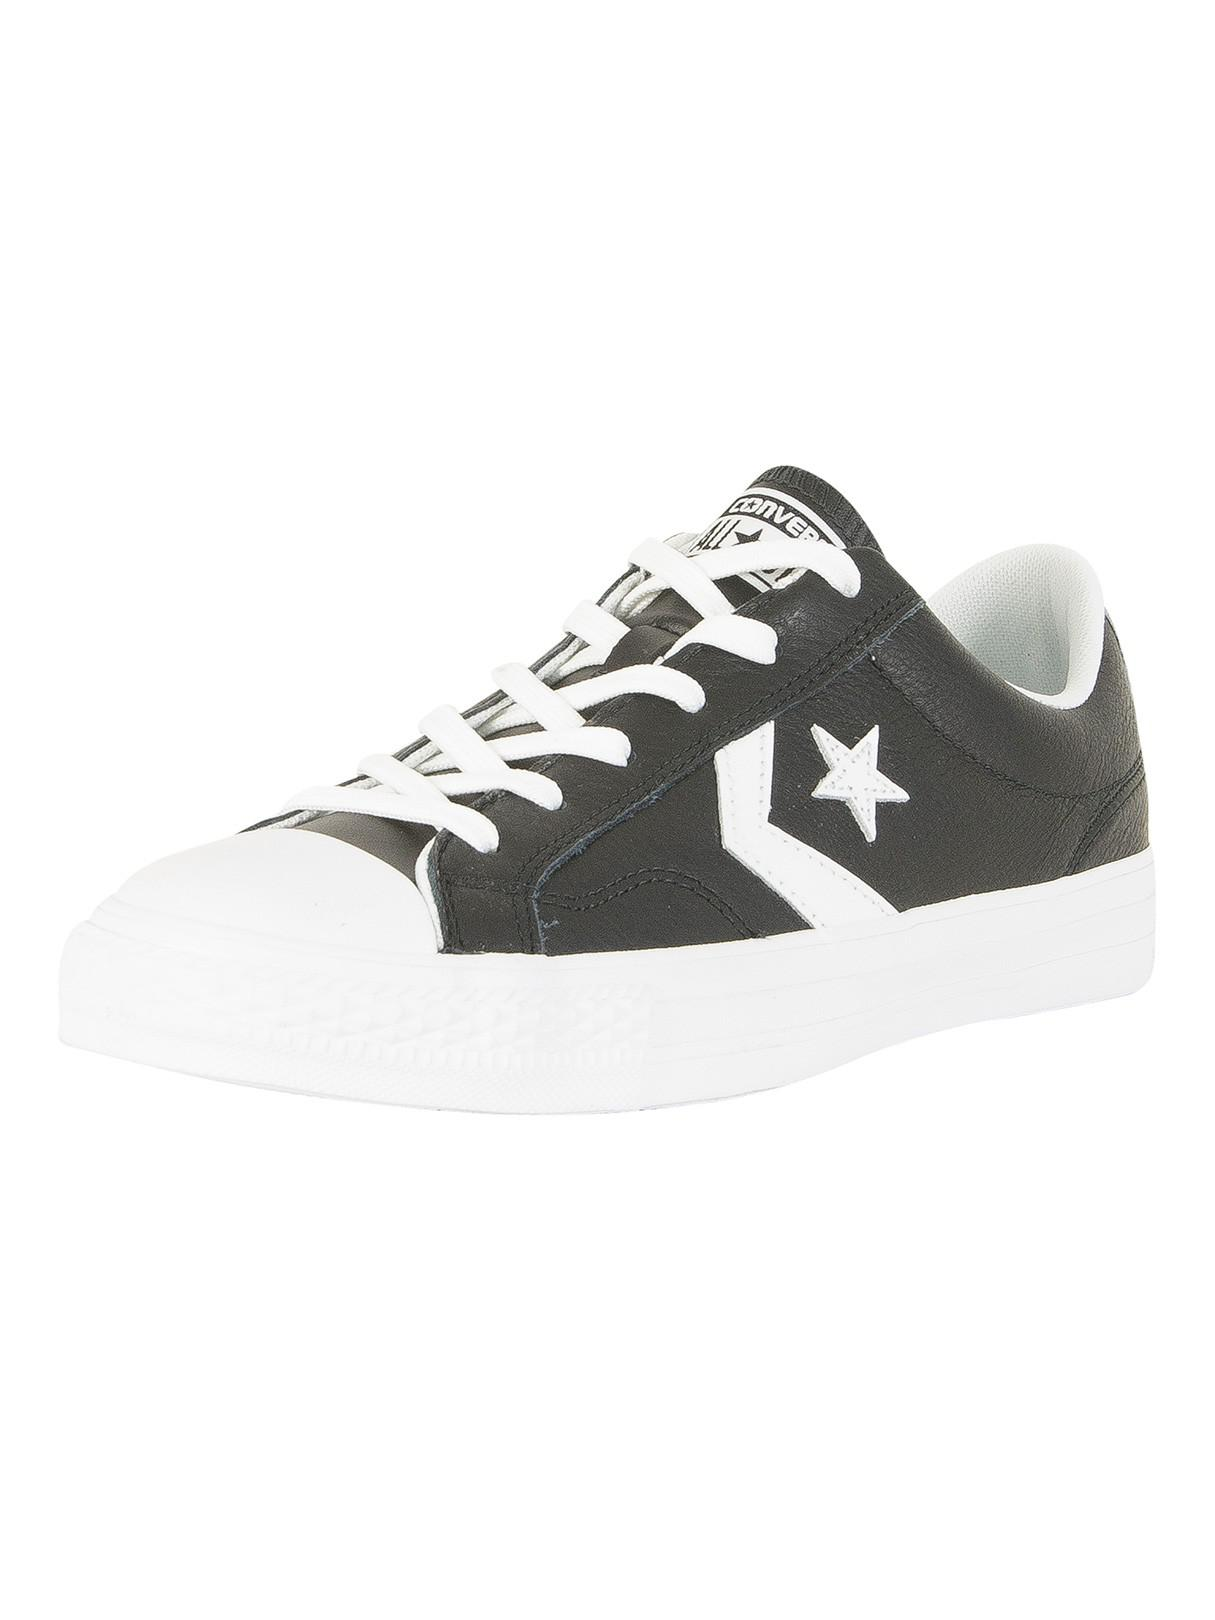 5d3956cfbf61 Lyst - Converse Black white Star Player Ox Trainers in Black for Men